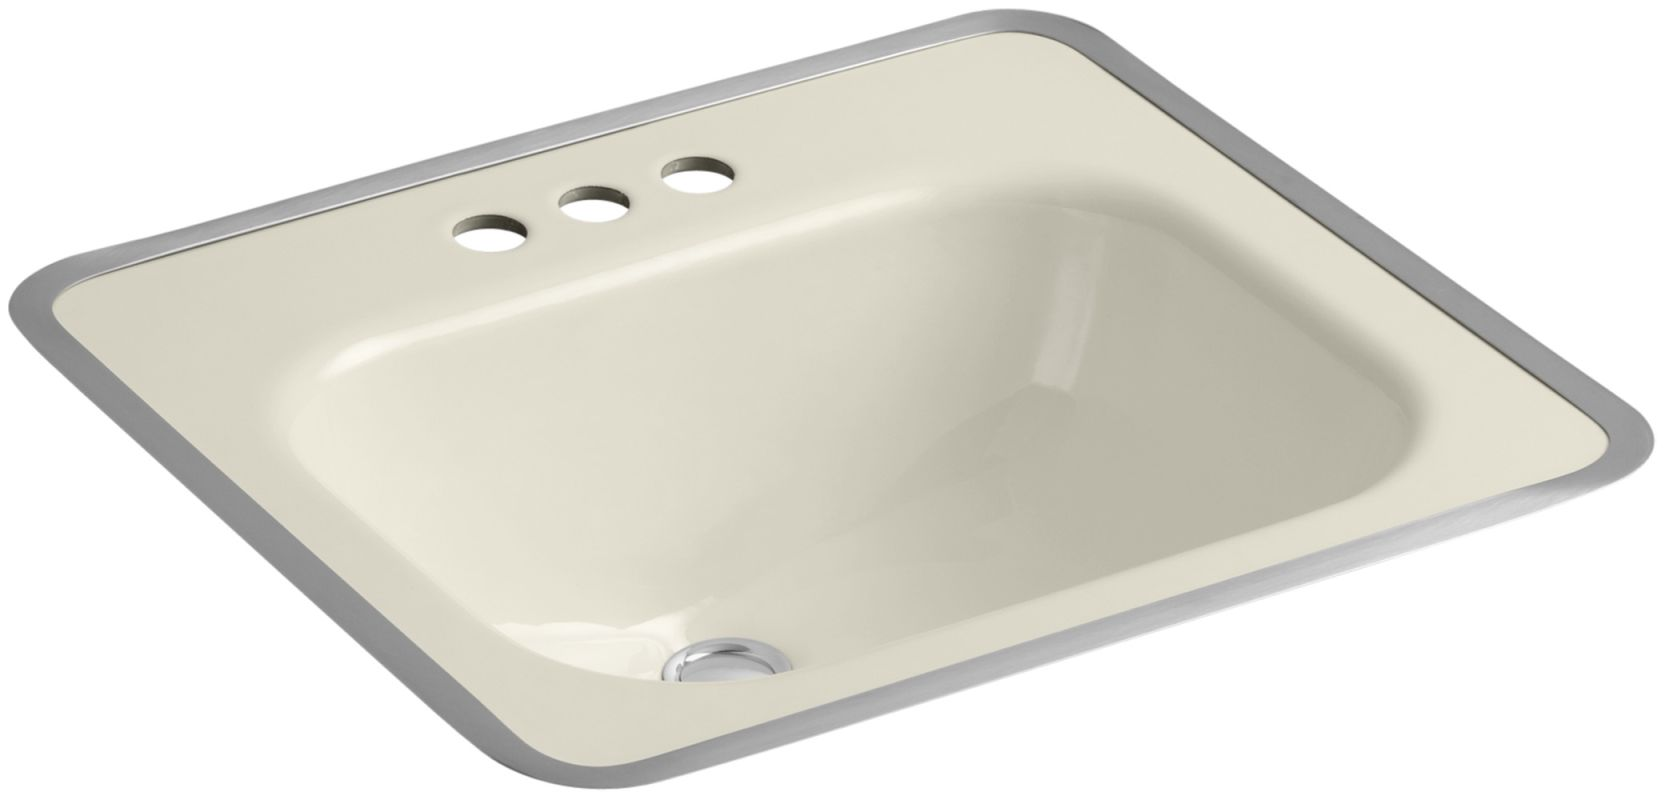 Kohler K 2890 4 47 Almond Tahoe 16 Cast Iron Drop In Bathroom Sink With 3 Holes Drilled And